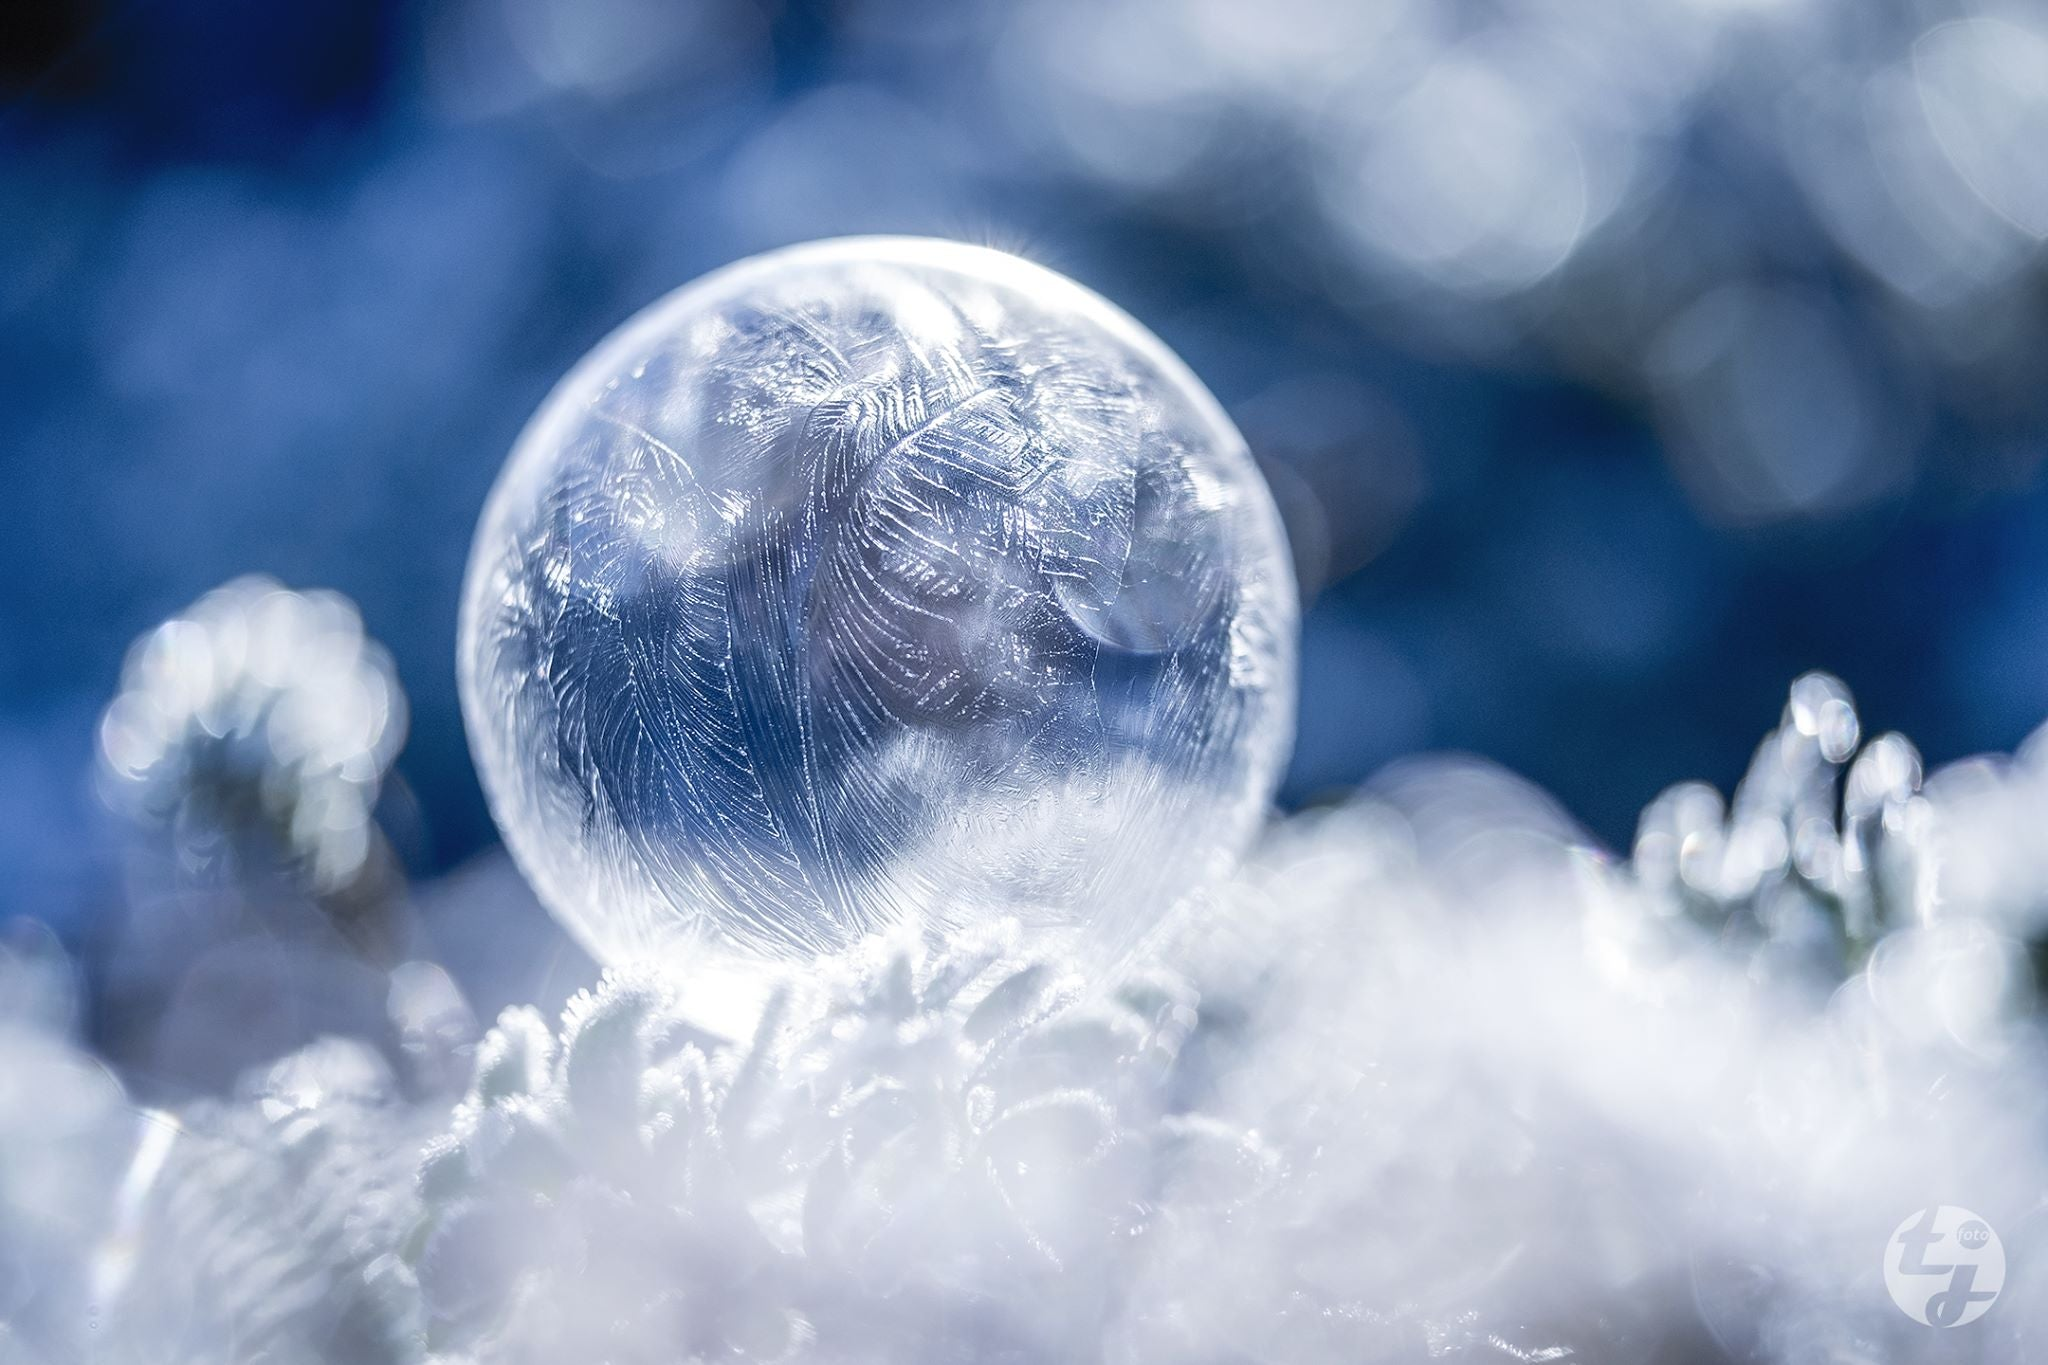 Frozen soap bubble swirly frosted crystals cold winter Lensbaby's featured photos